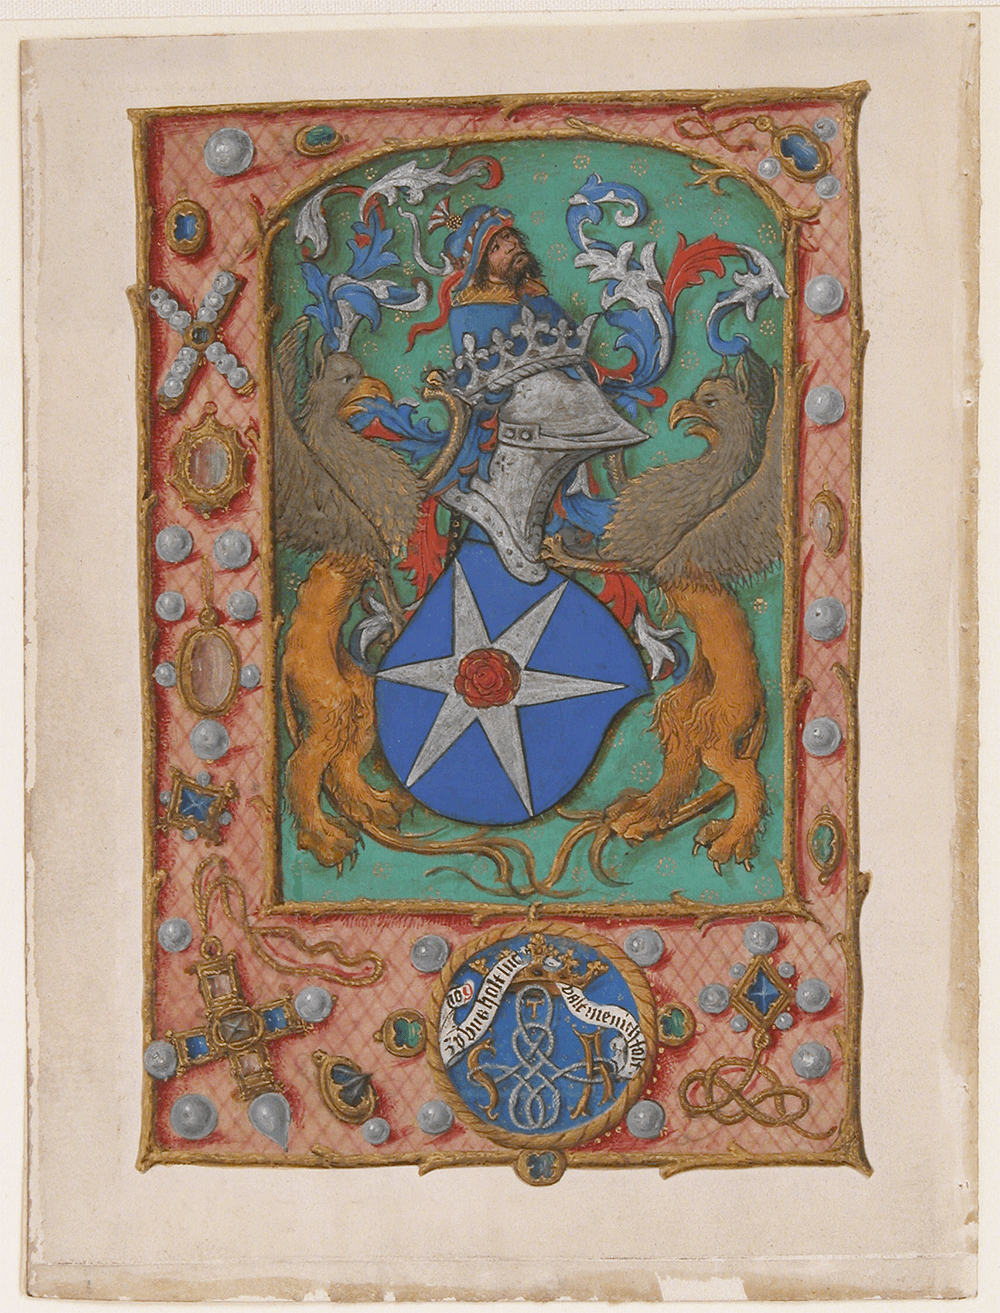 Manuscript Leaf with Coat of Arms